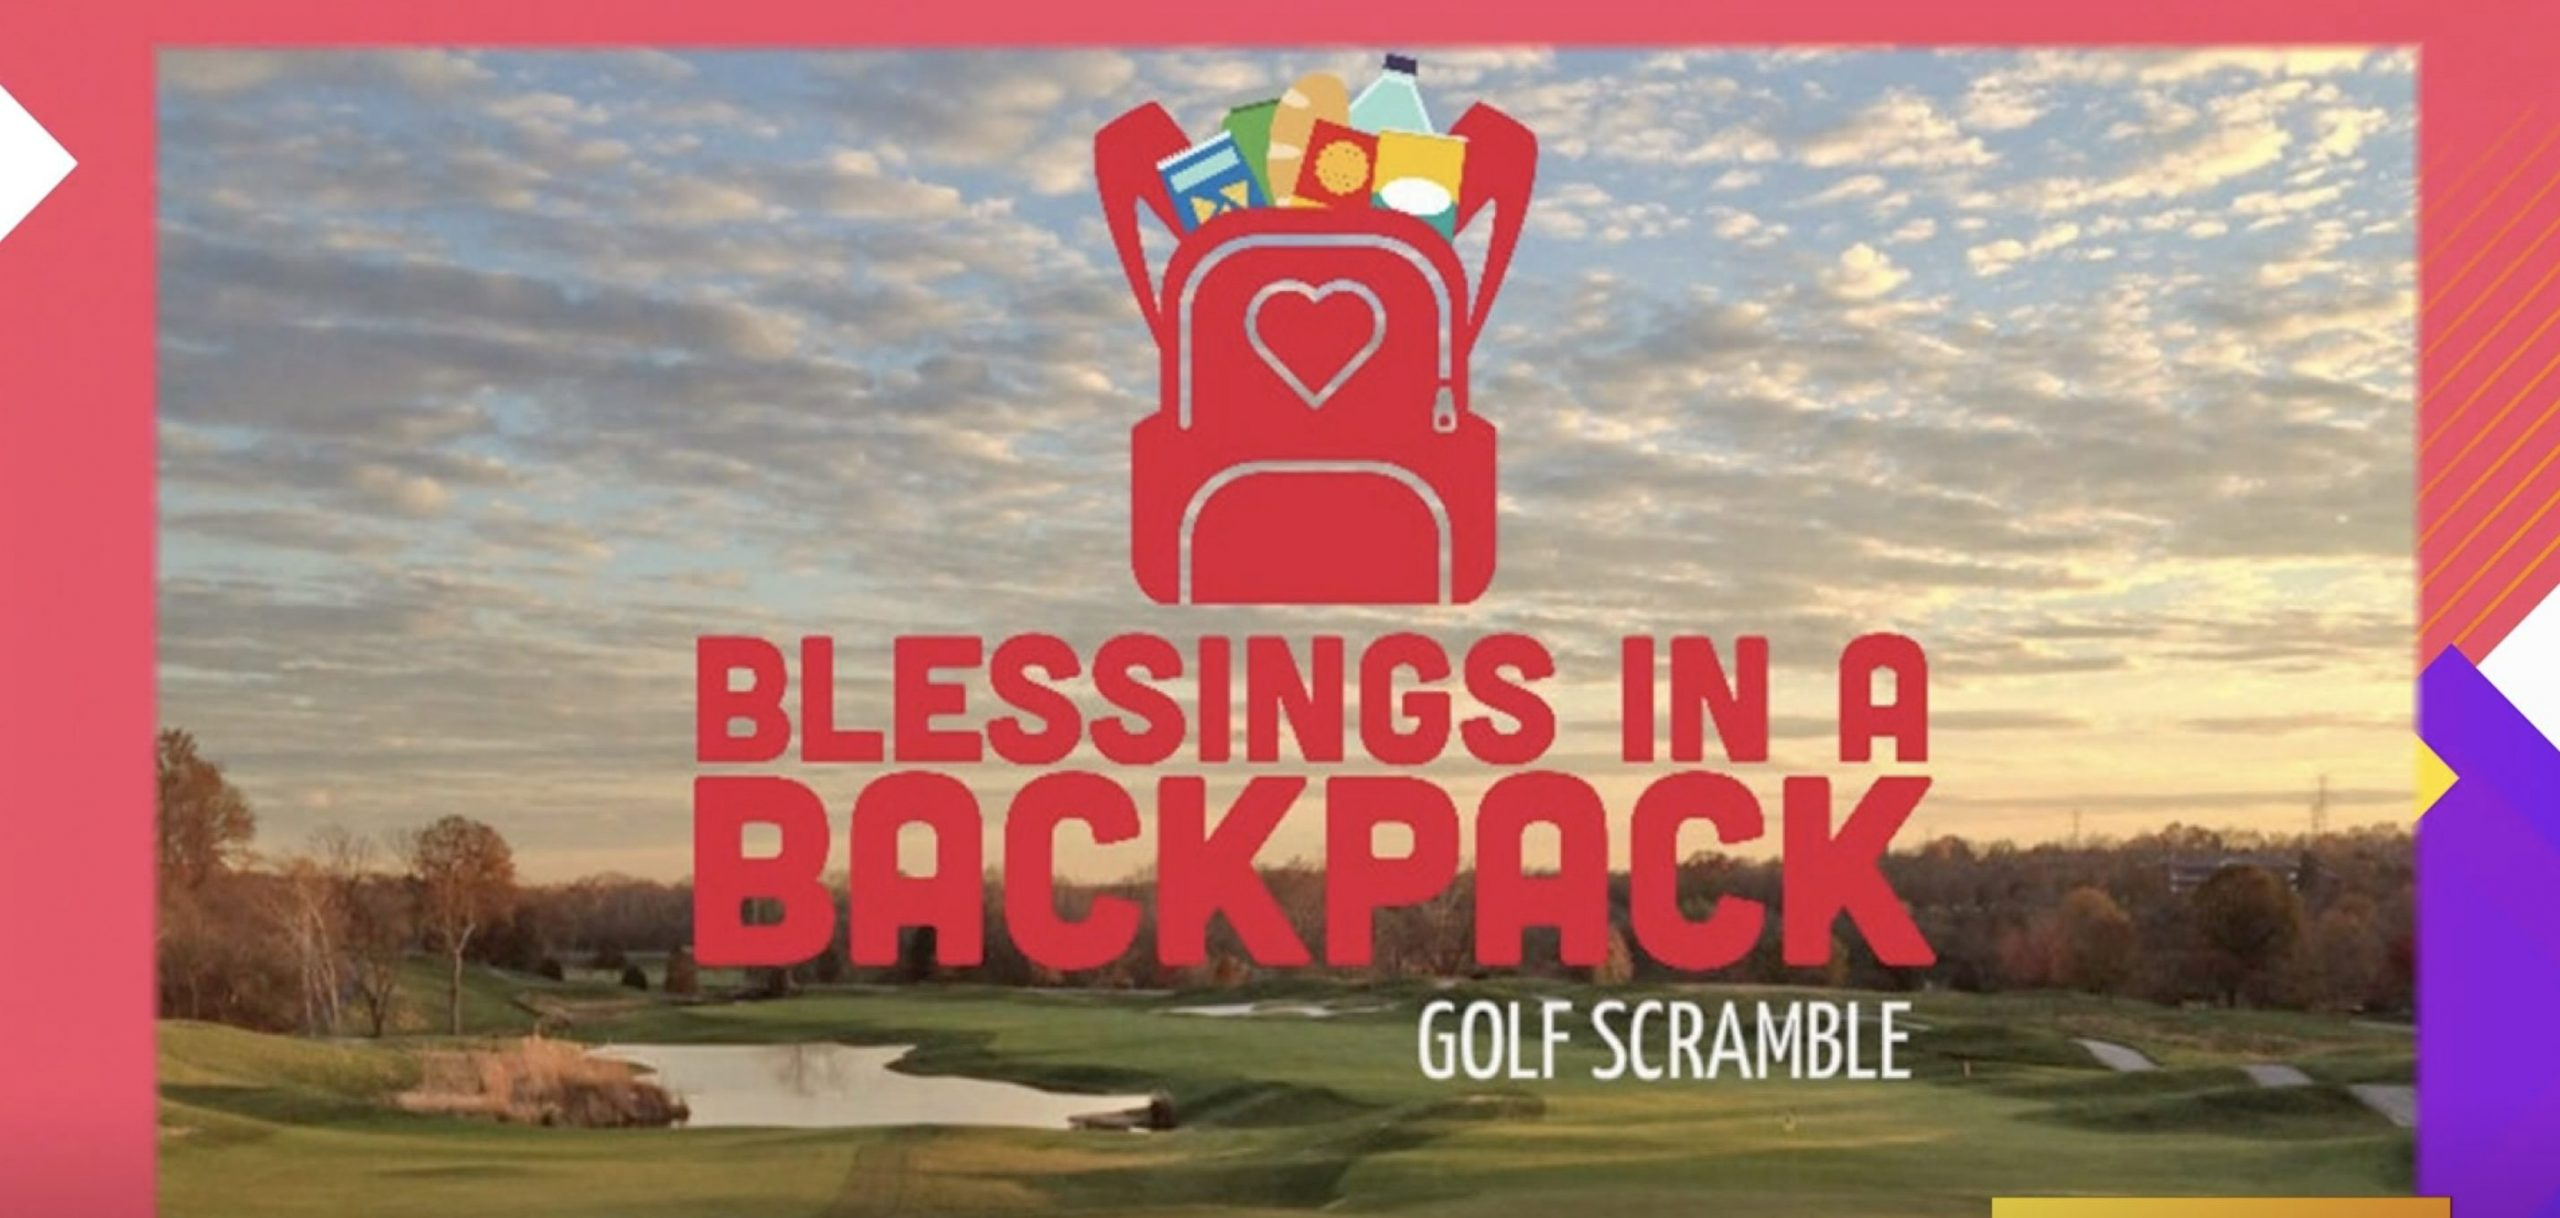 Blessings in a Backpack Hosts 4th Annual Golf Scramble